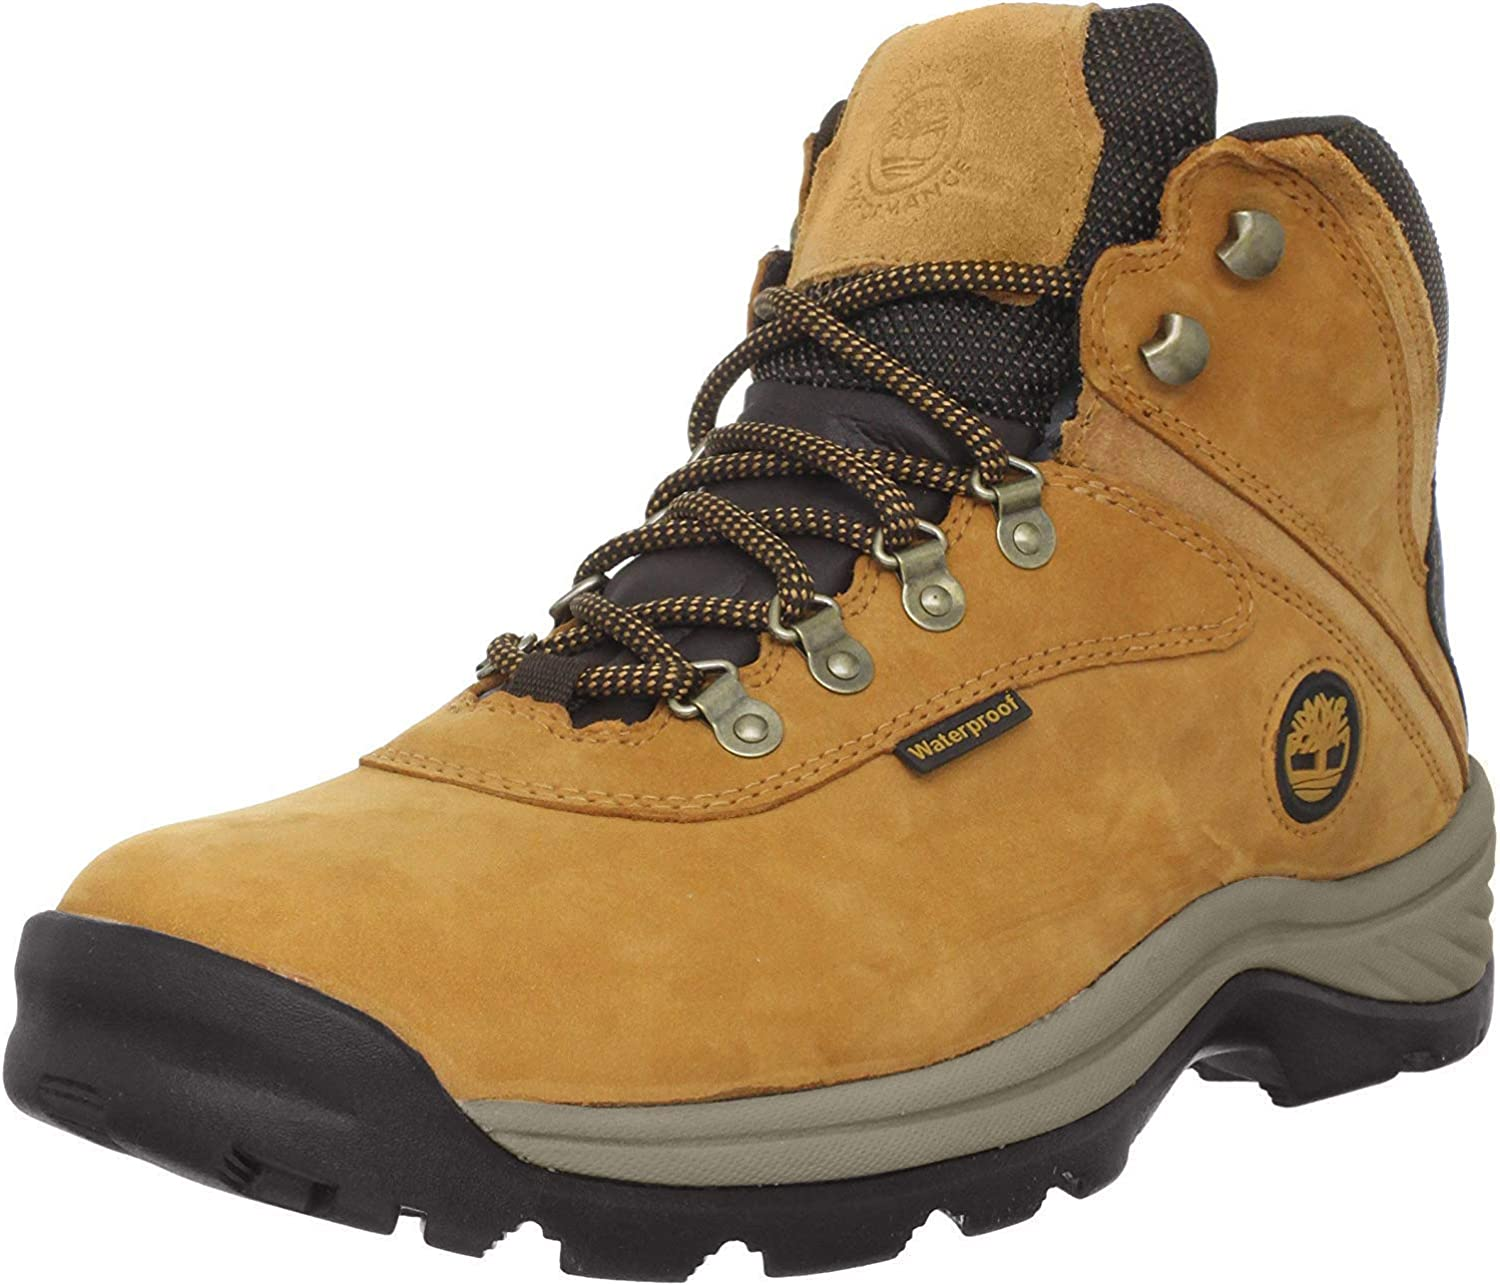 Timberland Men s White Ledge Mid Waterproof Boots, Wheat, 12W